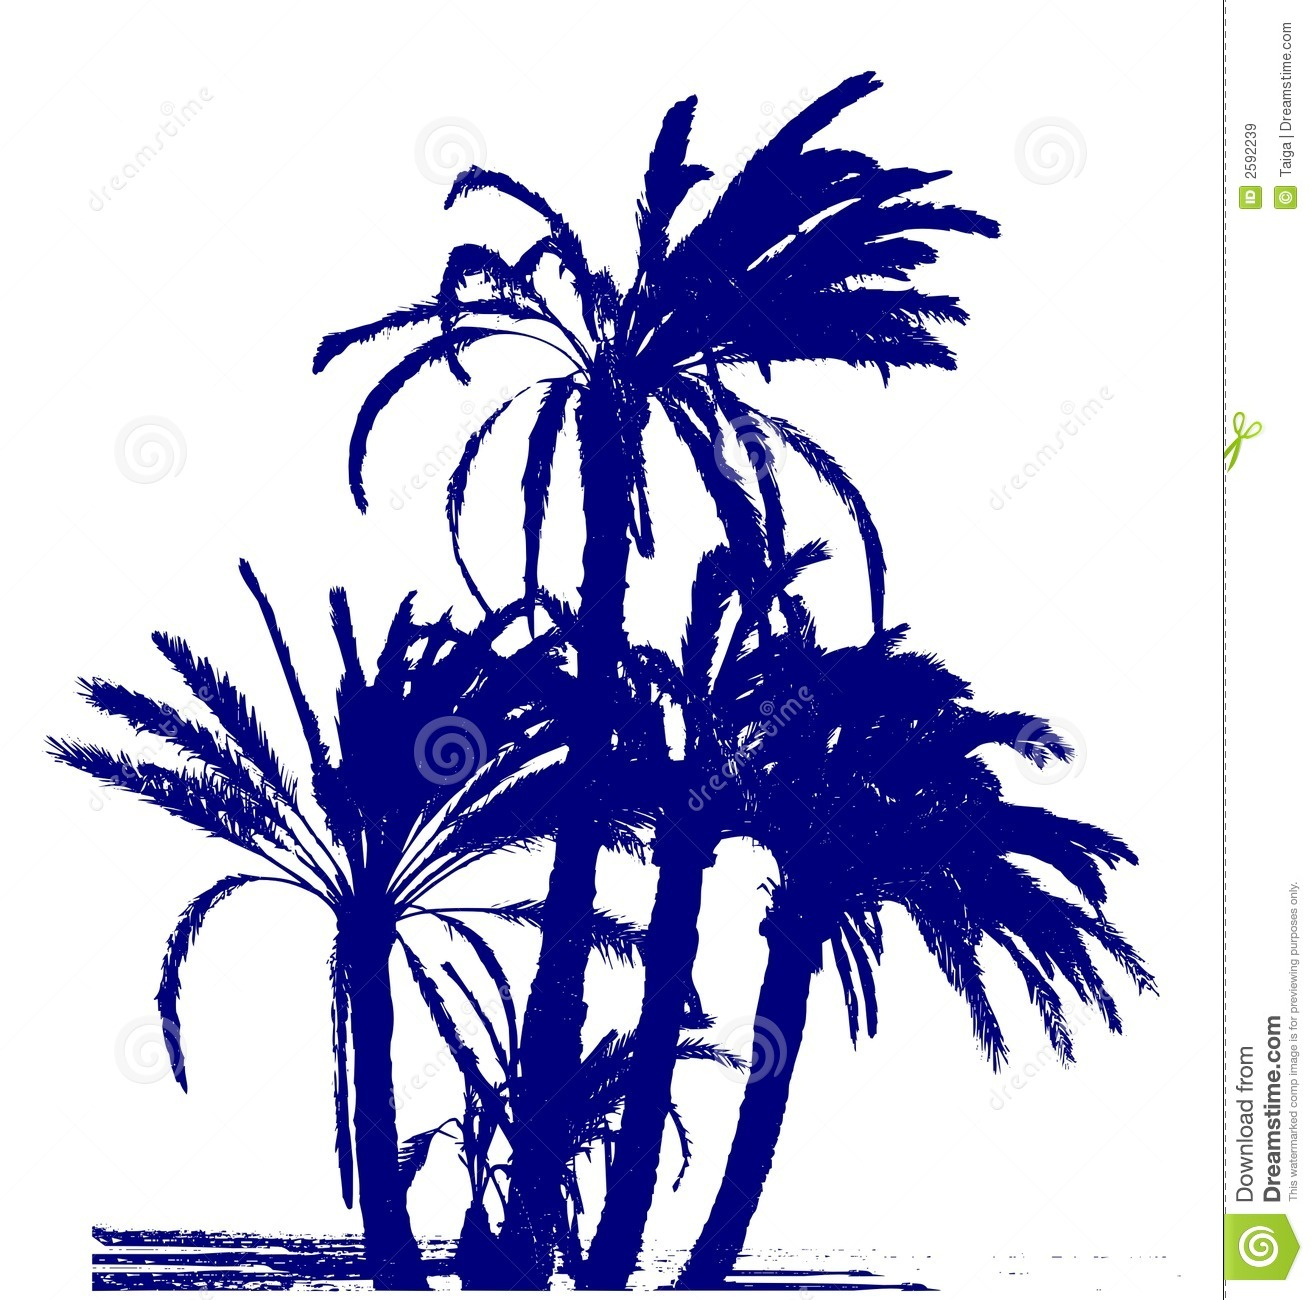 Palms group / vector